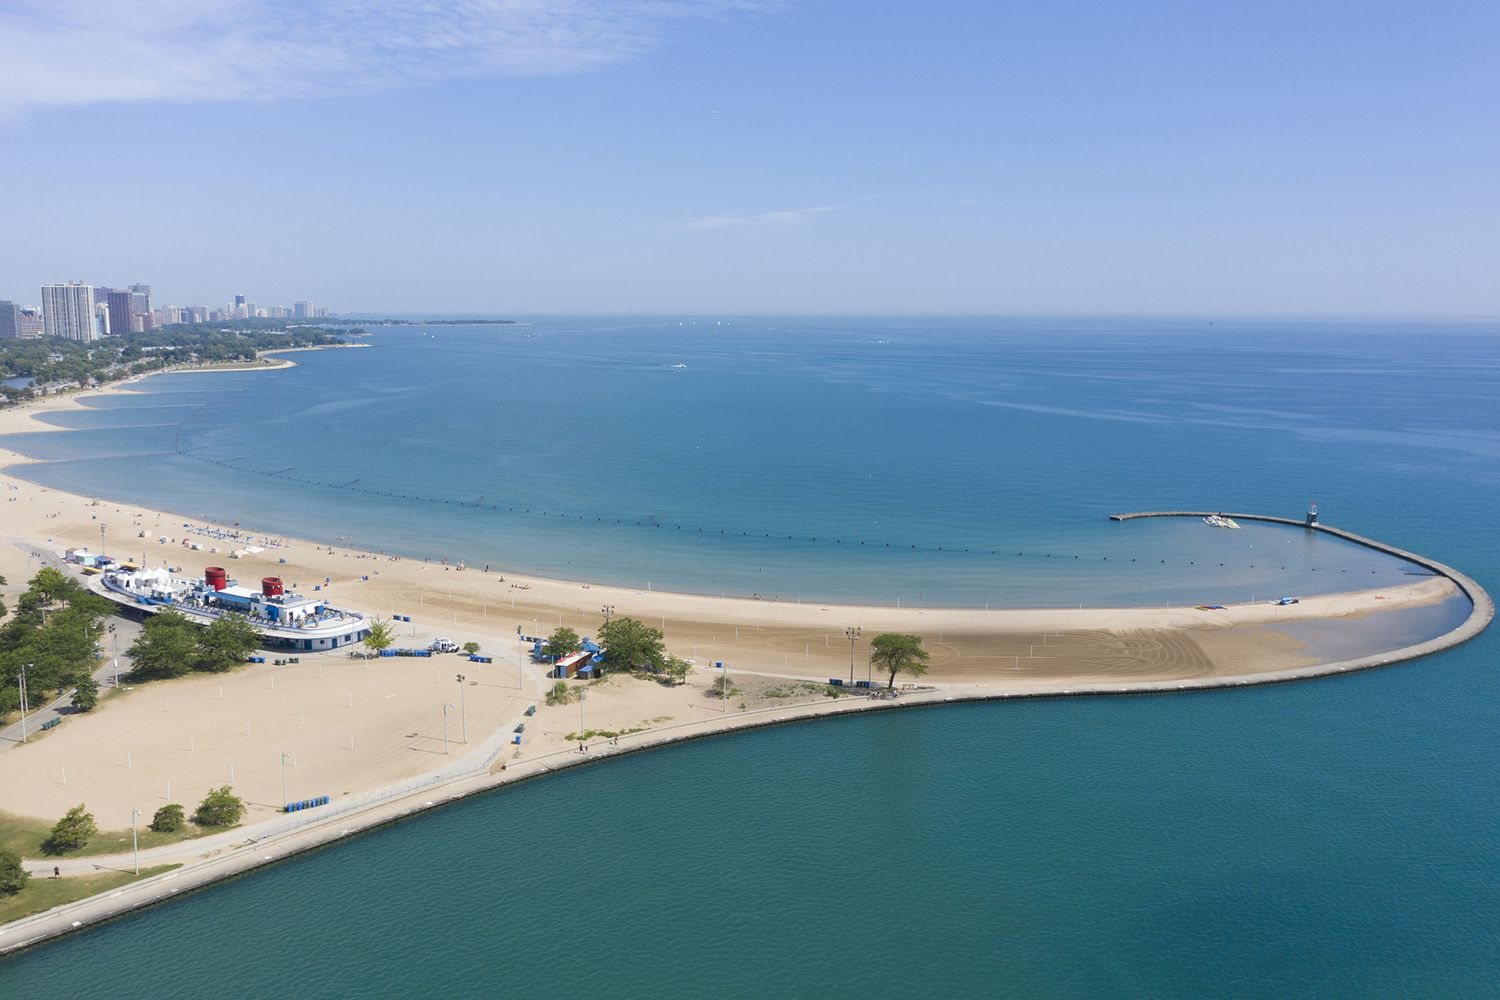 Aerial view of North Avenue Beach in Chicago